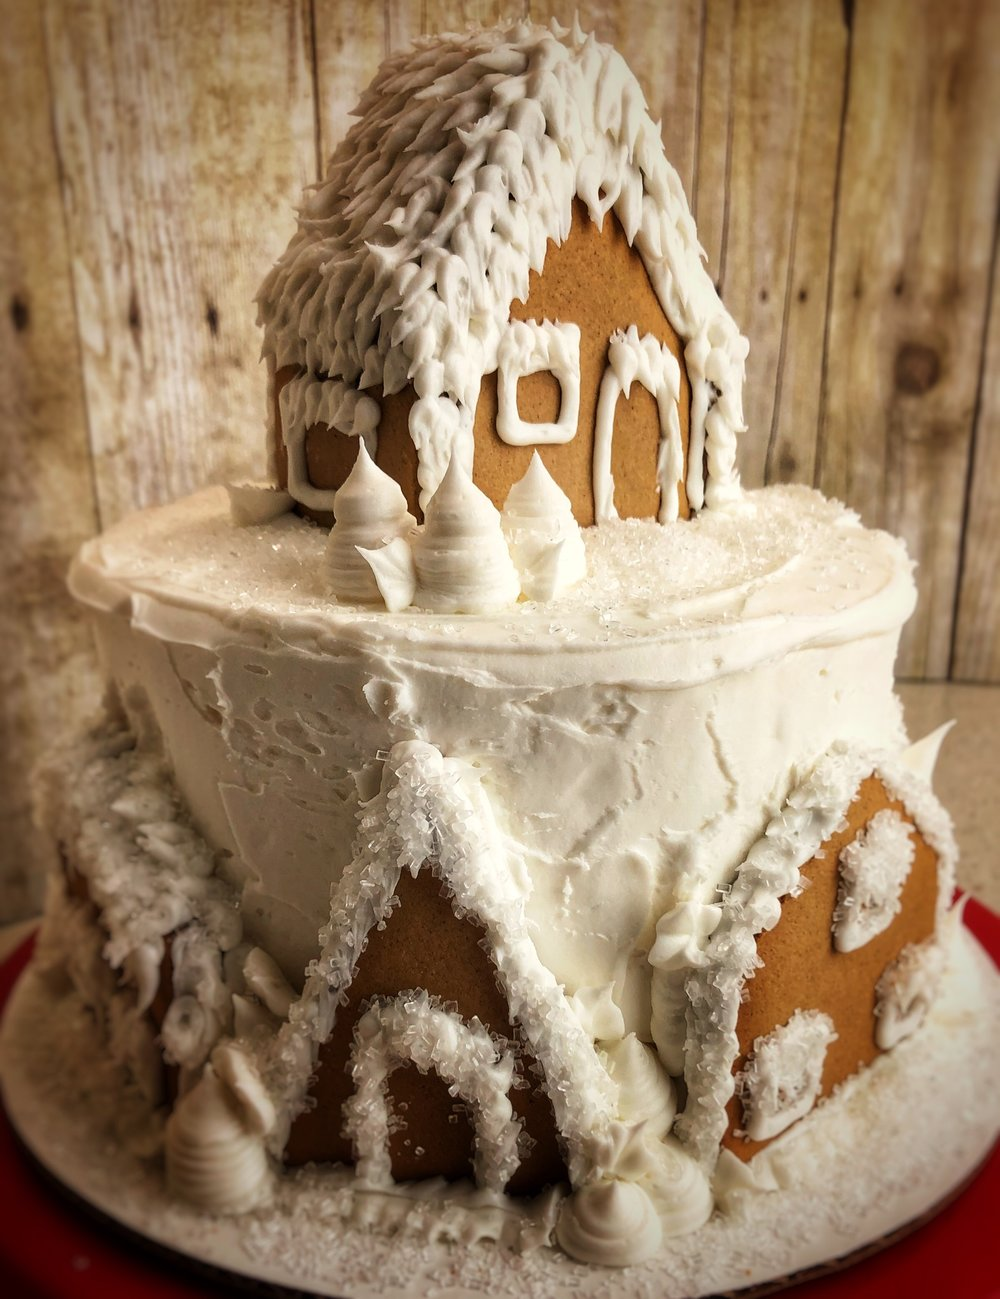 Wintry-white Gingerbread House Cake